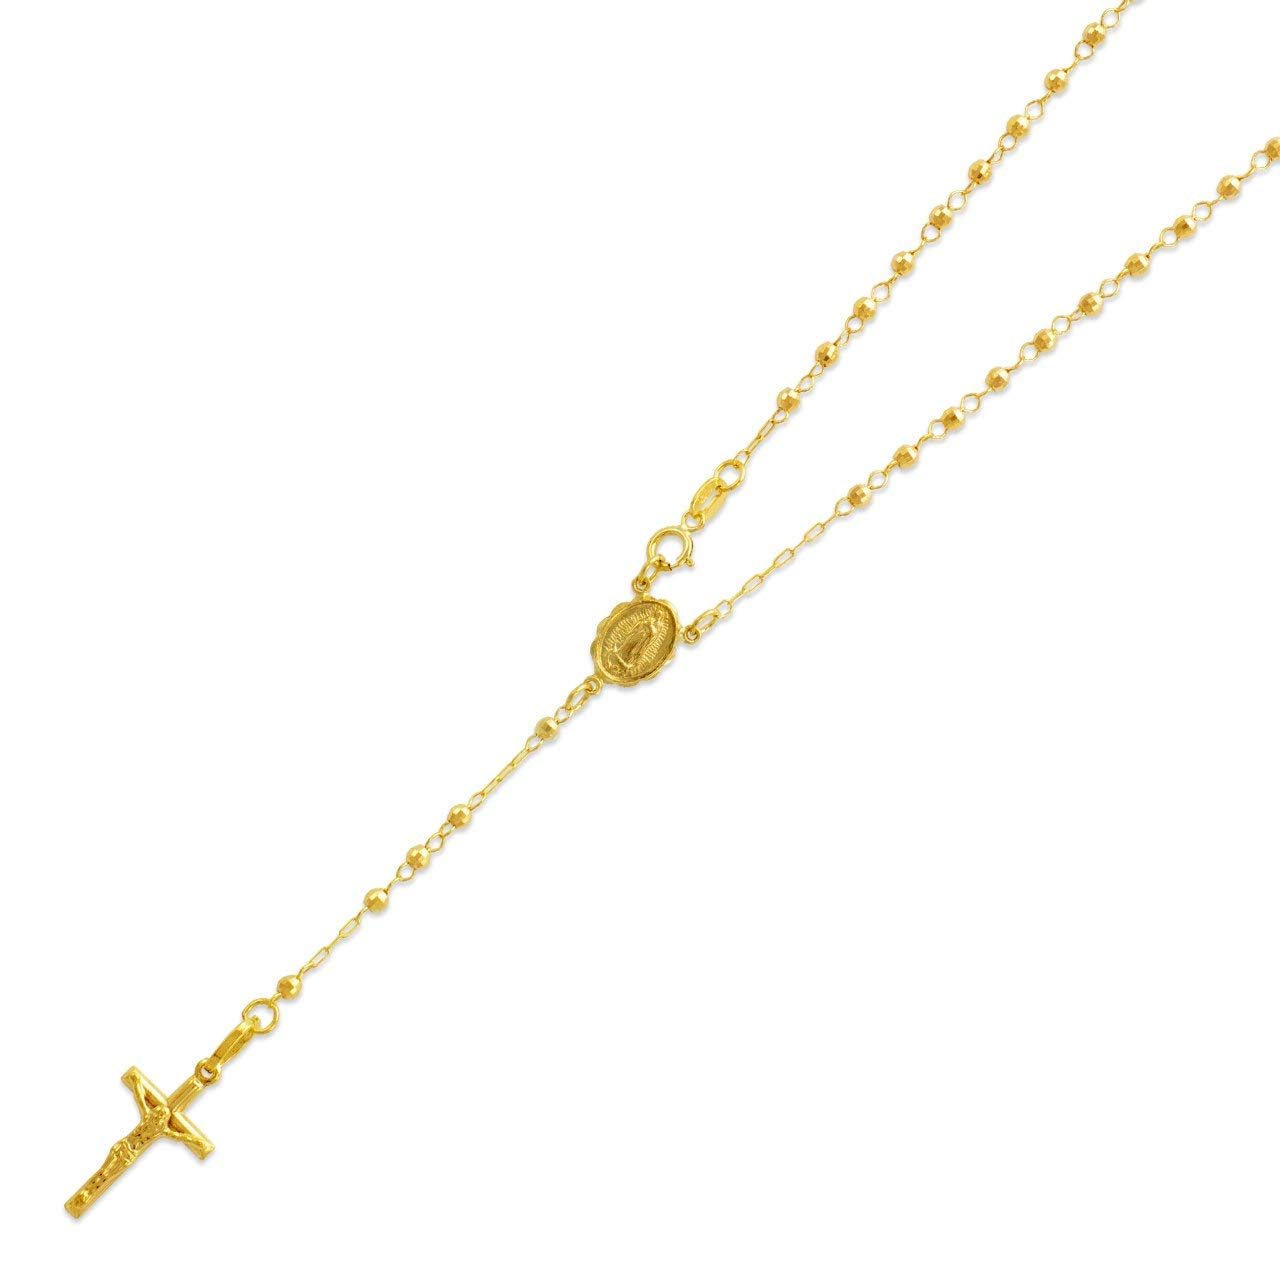 14K Yellow Gold Chain Cross Necklace DC Bead Rosary Necklace (16, 18, 20, 24, 26''), 20'' by Double Accent